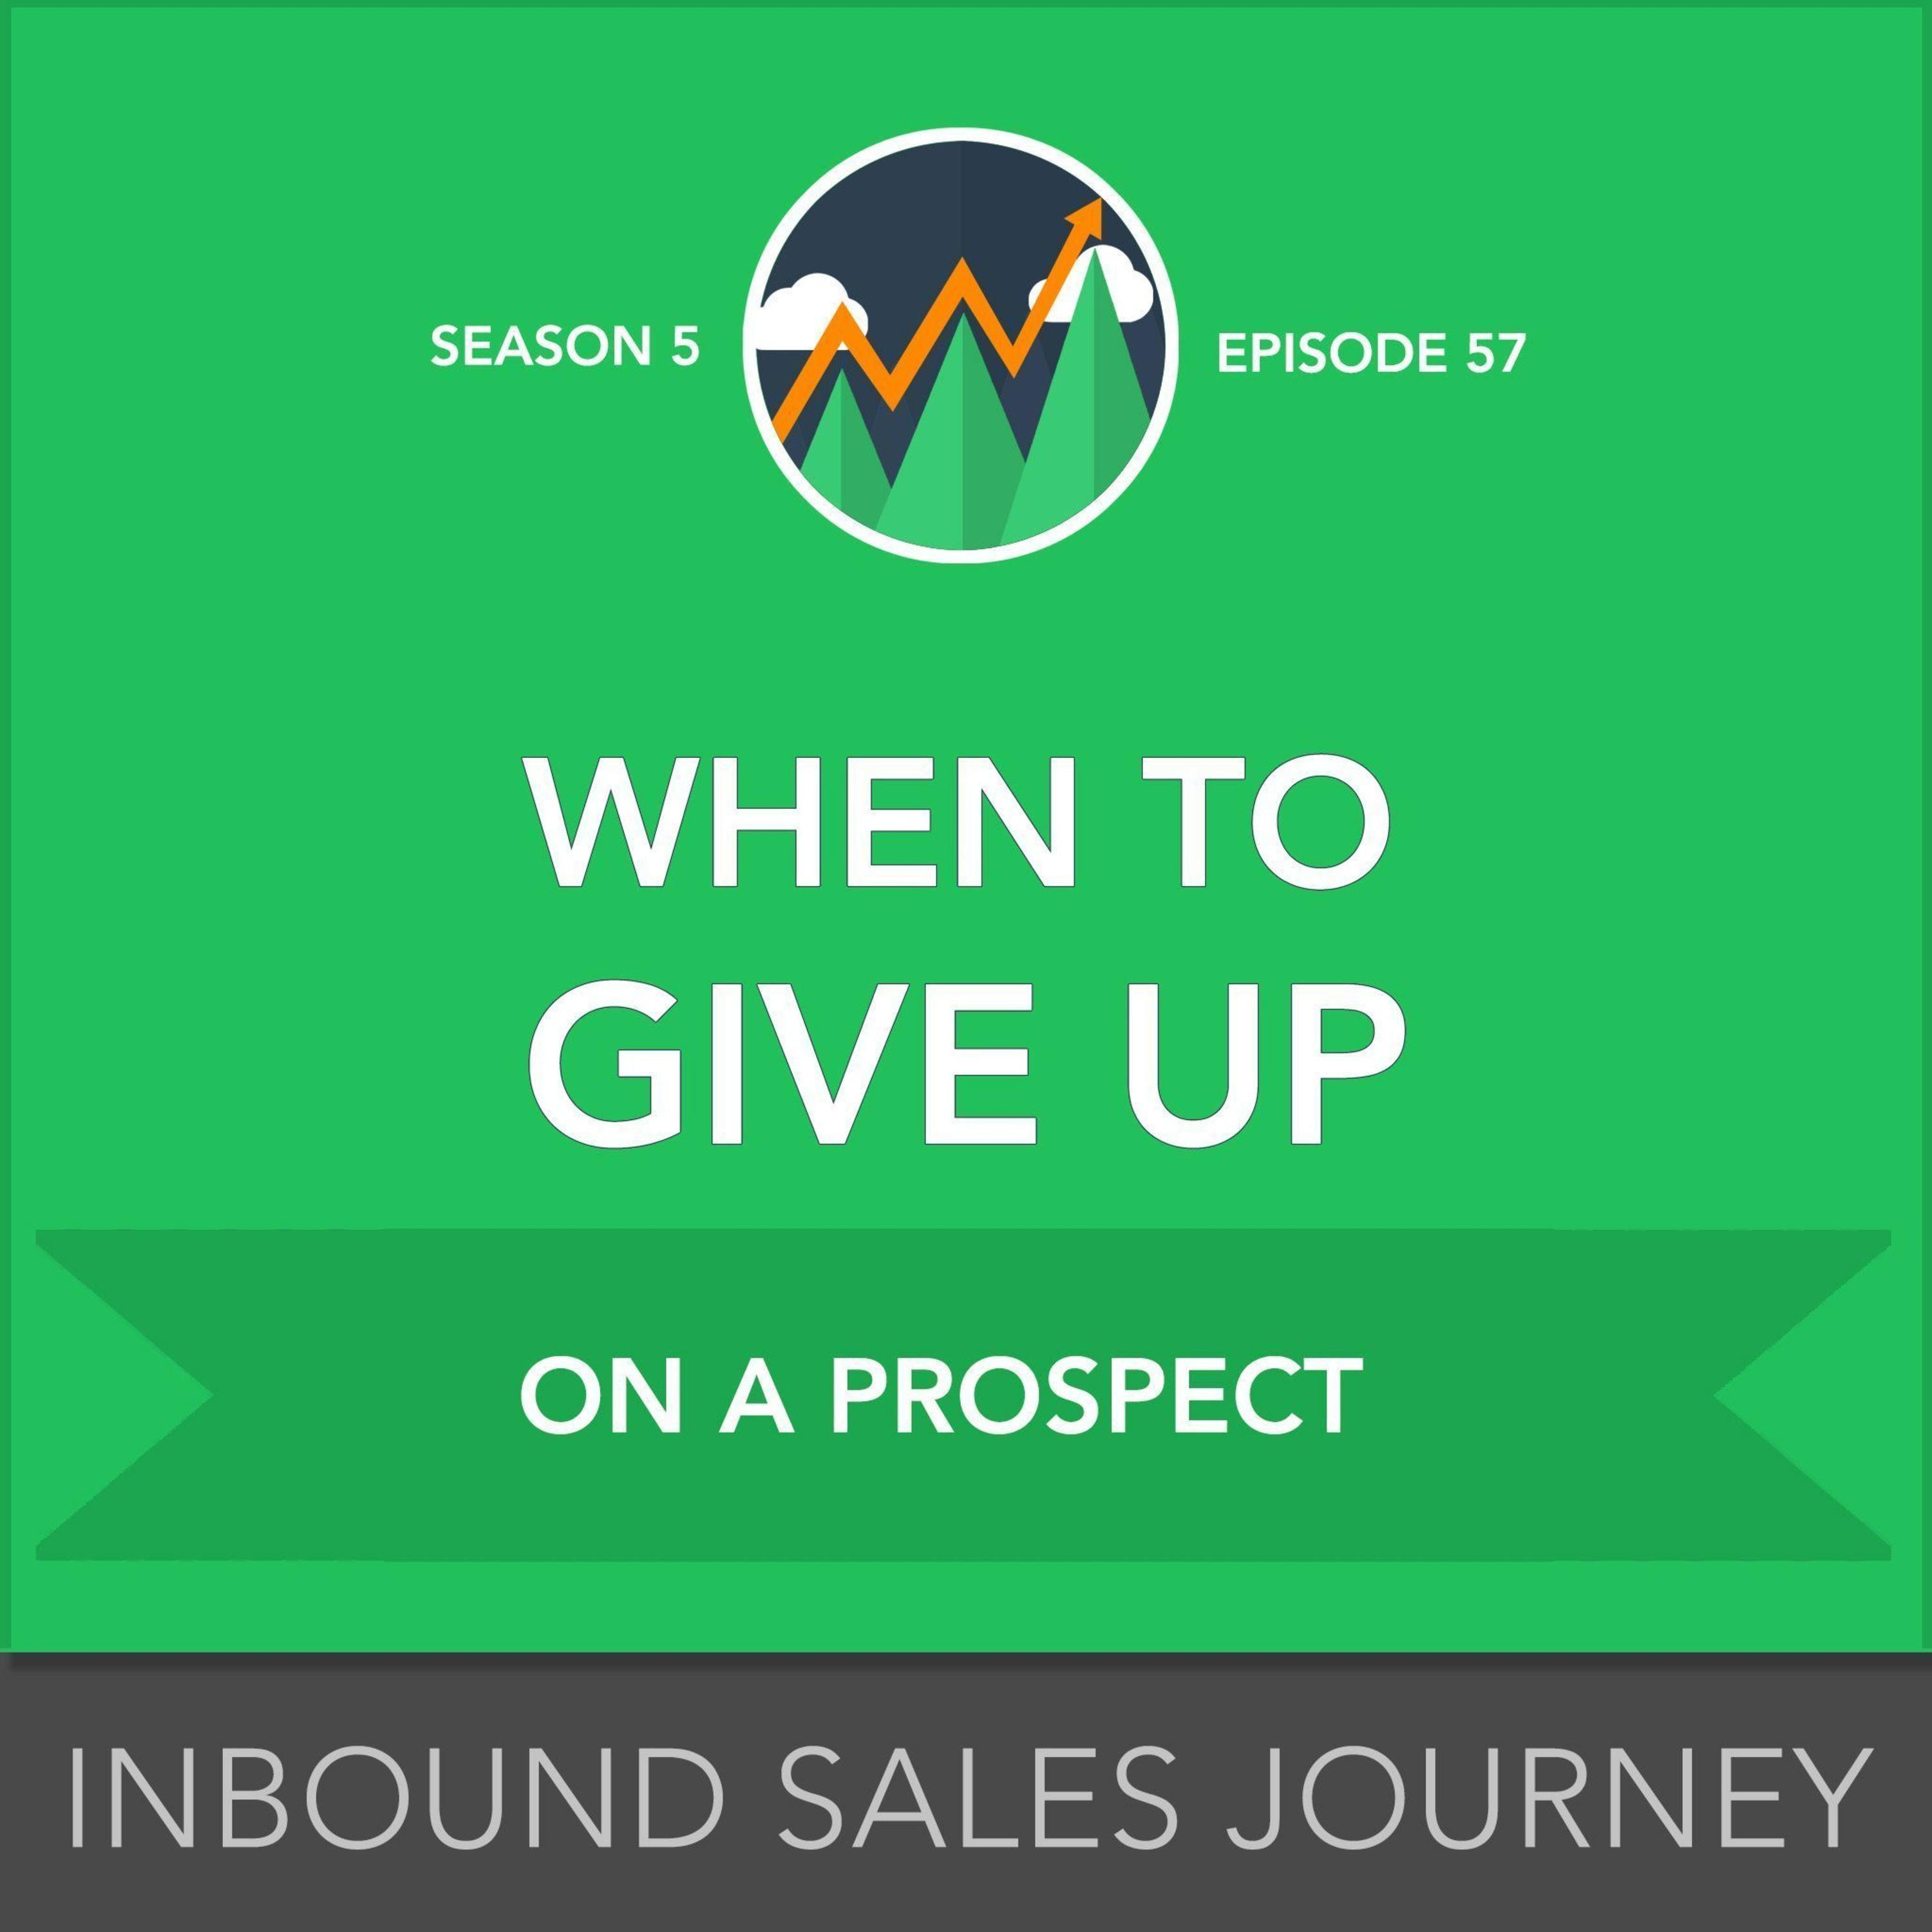 When to Give Up on a Prospect